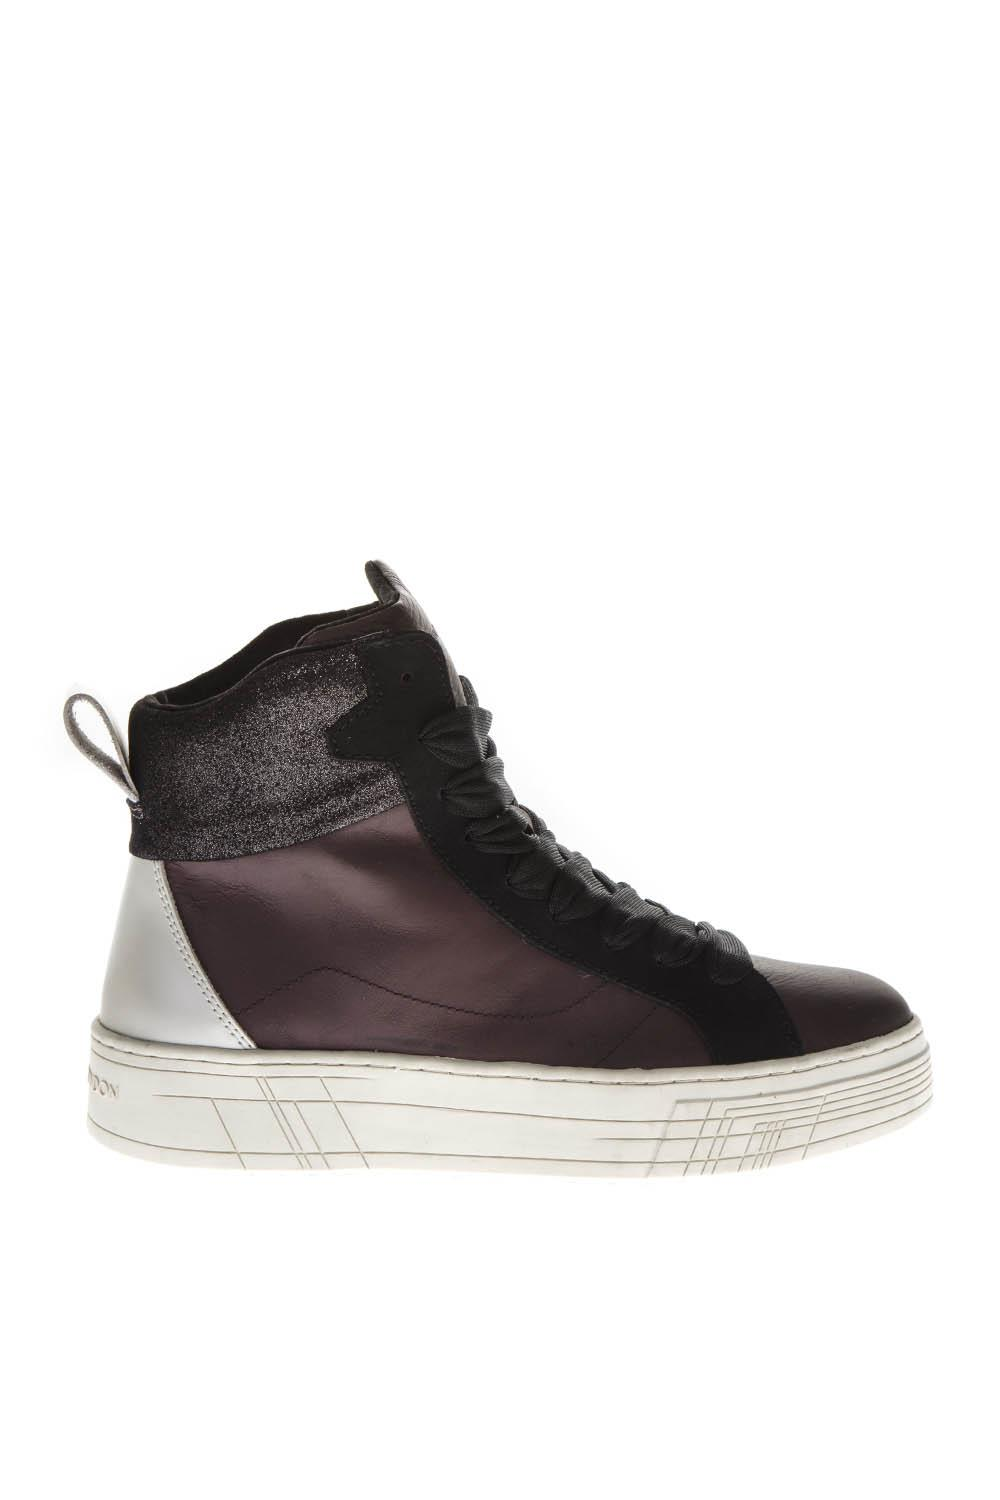 6b4e94c024602 BURGUNDY LEATHER HIGH-TOP SNEAKERS FW 2018 - CRIME LONDON - Boutique Galiano